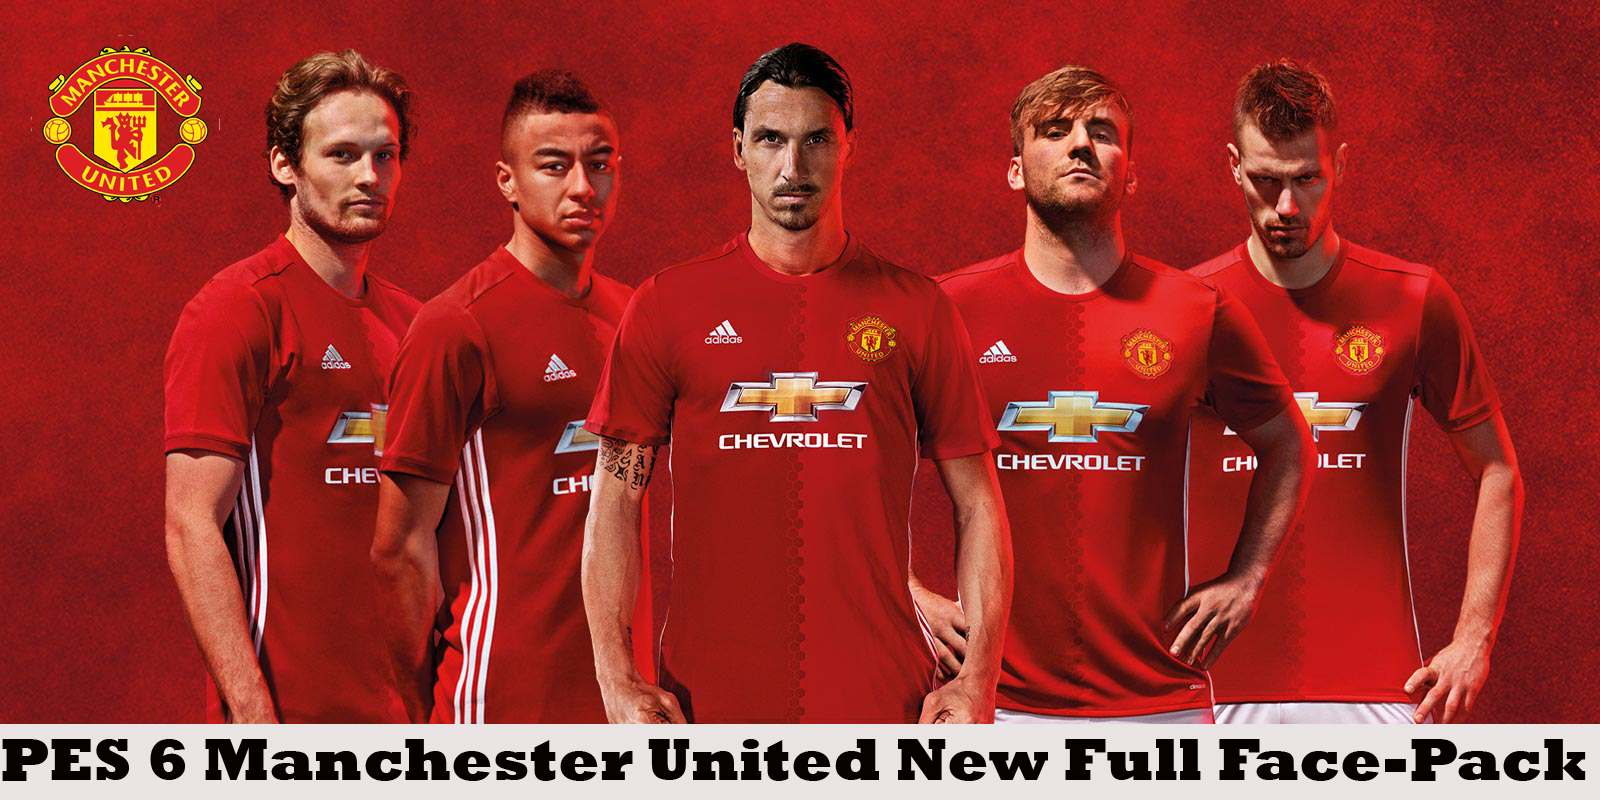 14ea03f7441 ultigamerz  PES 6 Manchester United New Full Face-Pack